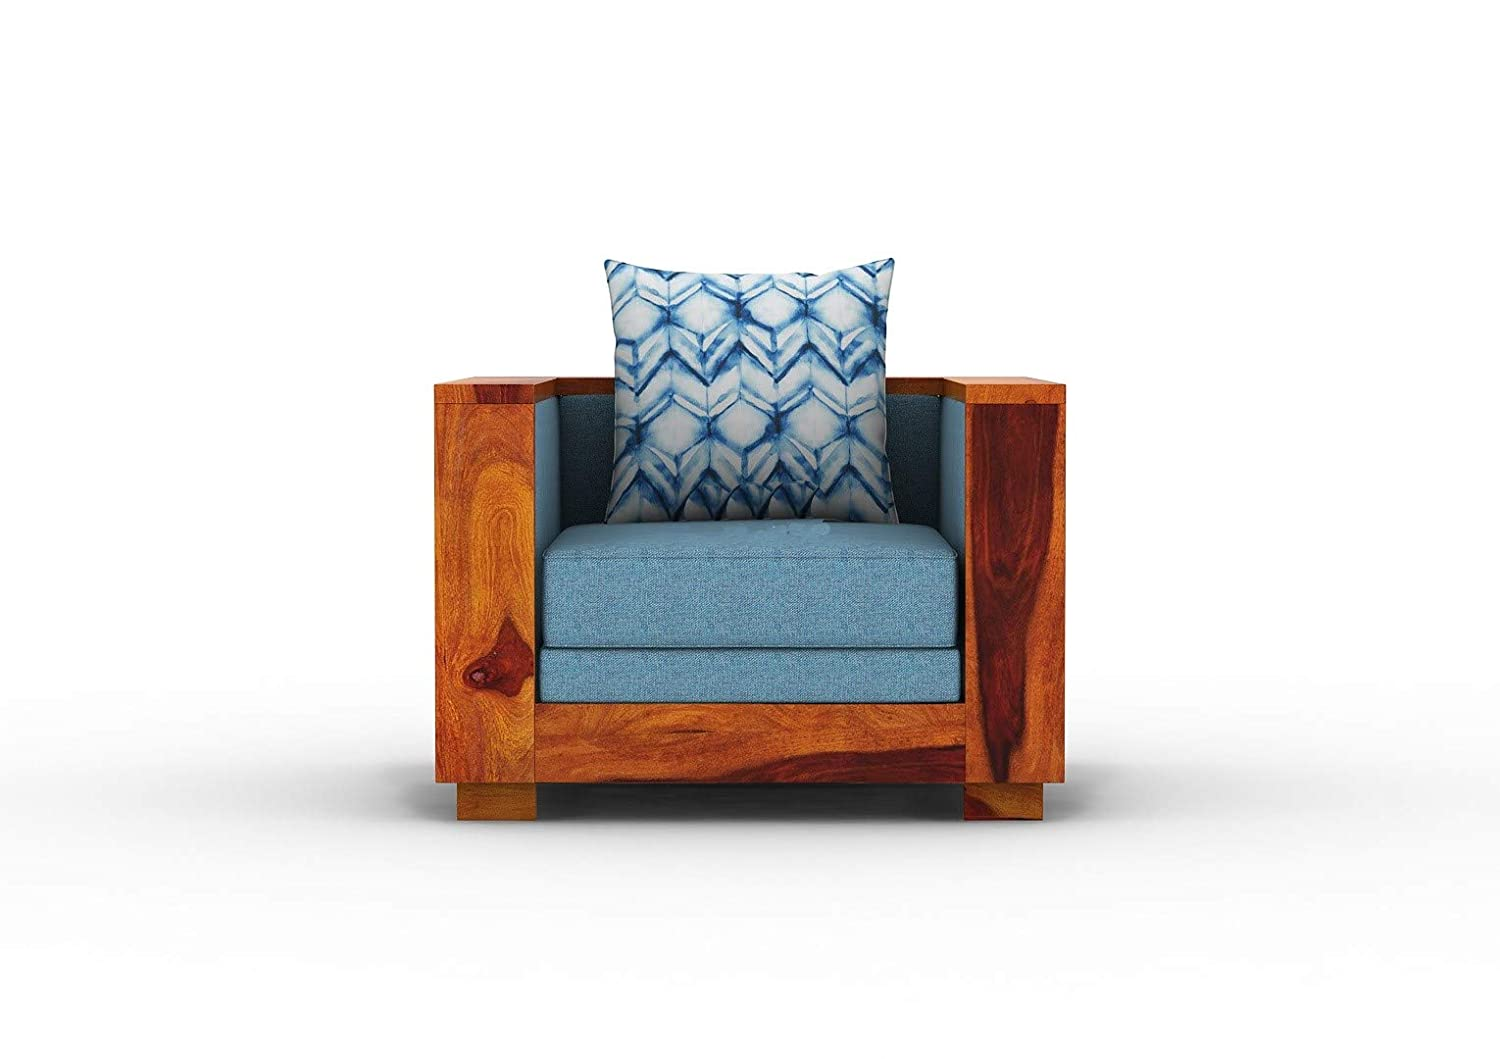 Lazina Sheesham Wood Sofa Set Living Room Furniture (3+1+1, Brown)- Honey Finish Blue Fabric